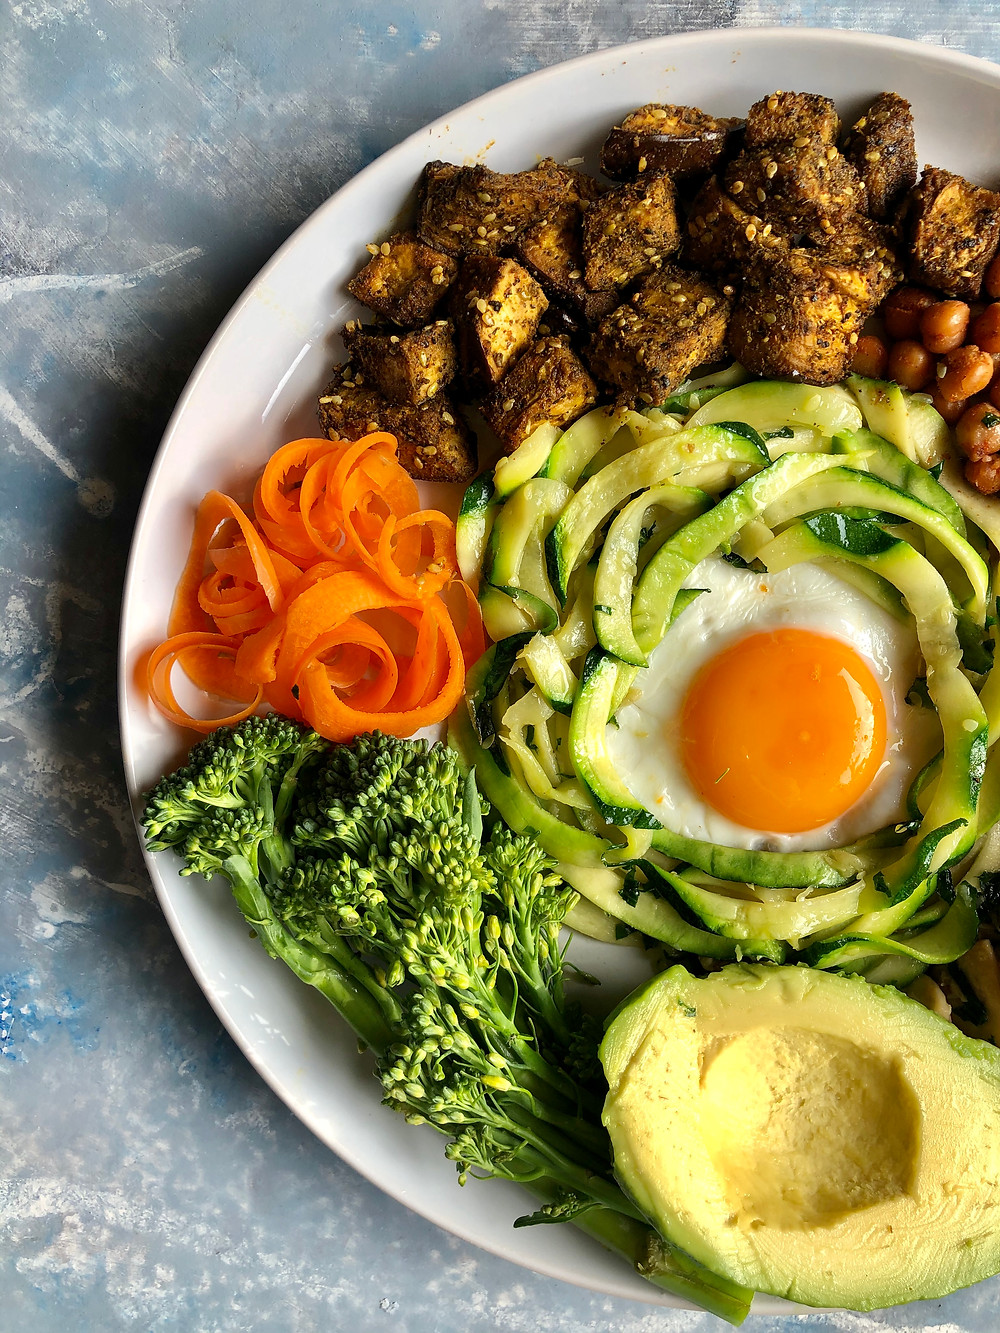 Breakfast plate with eggplant, chickpeas, carrots, zucchini, chickpeas, broccolini, avocado and egg